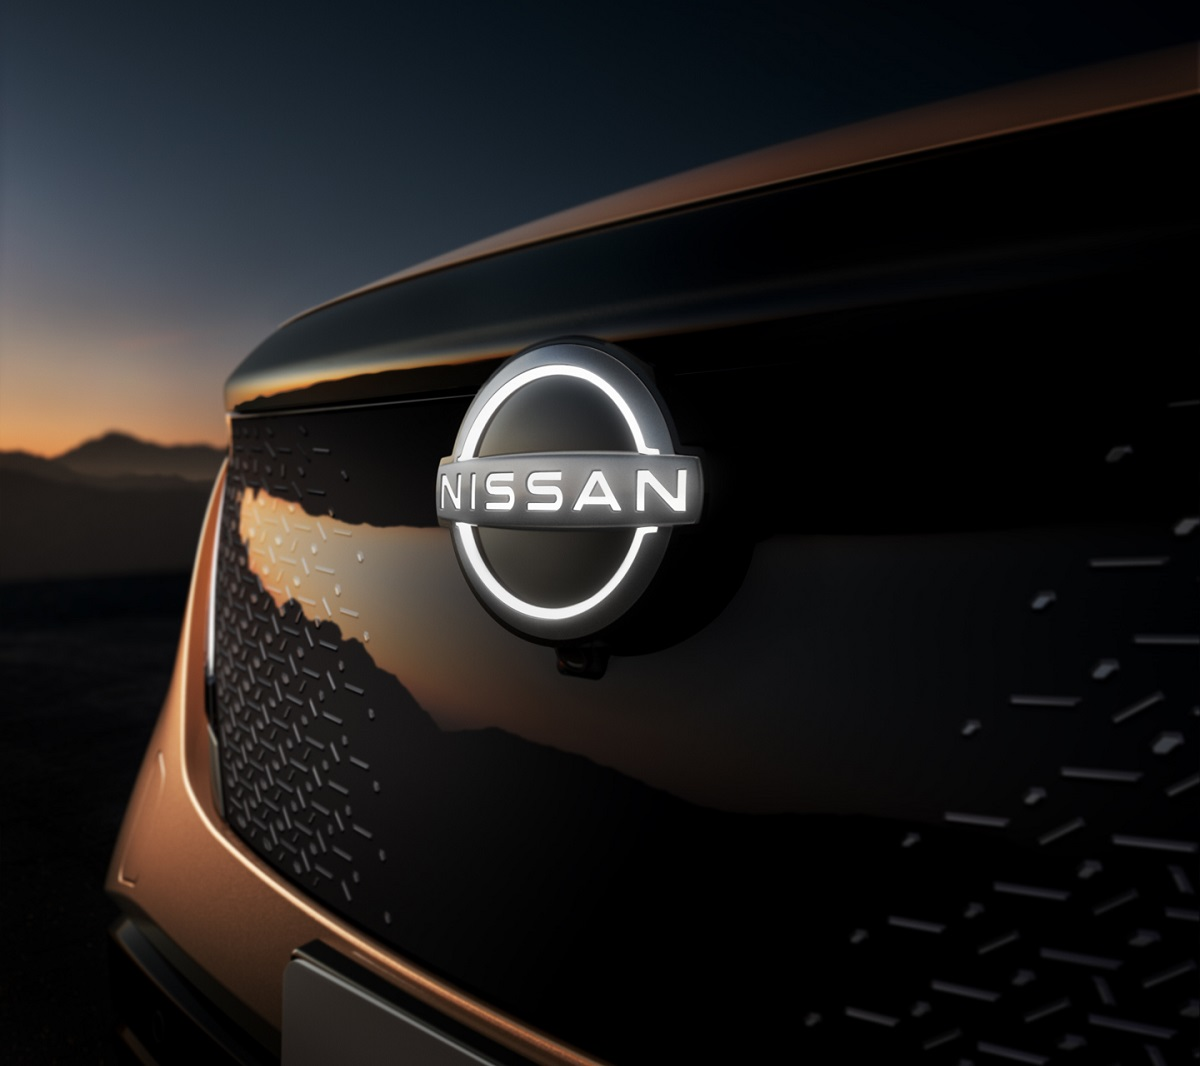 5 Nissan Murano is Redesigned, Gets Hybrid Unit - US SUVS NATION